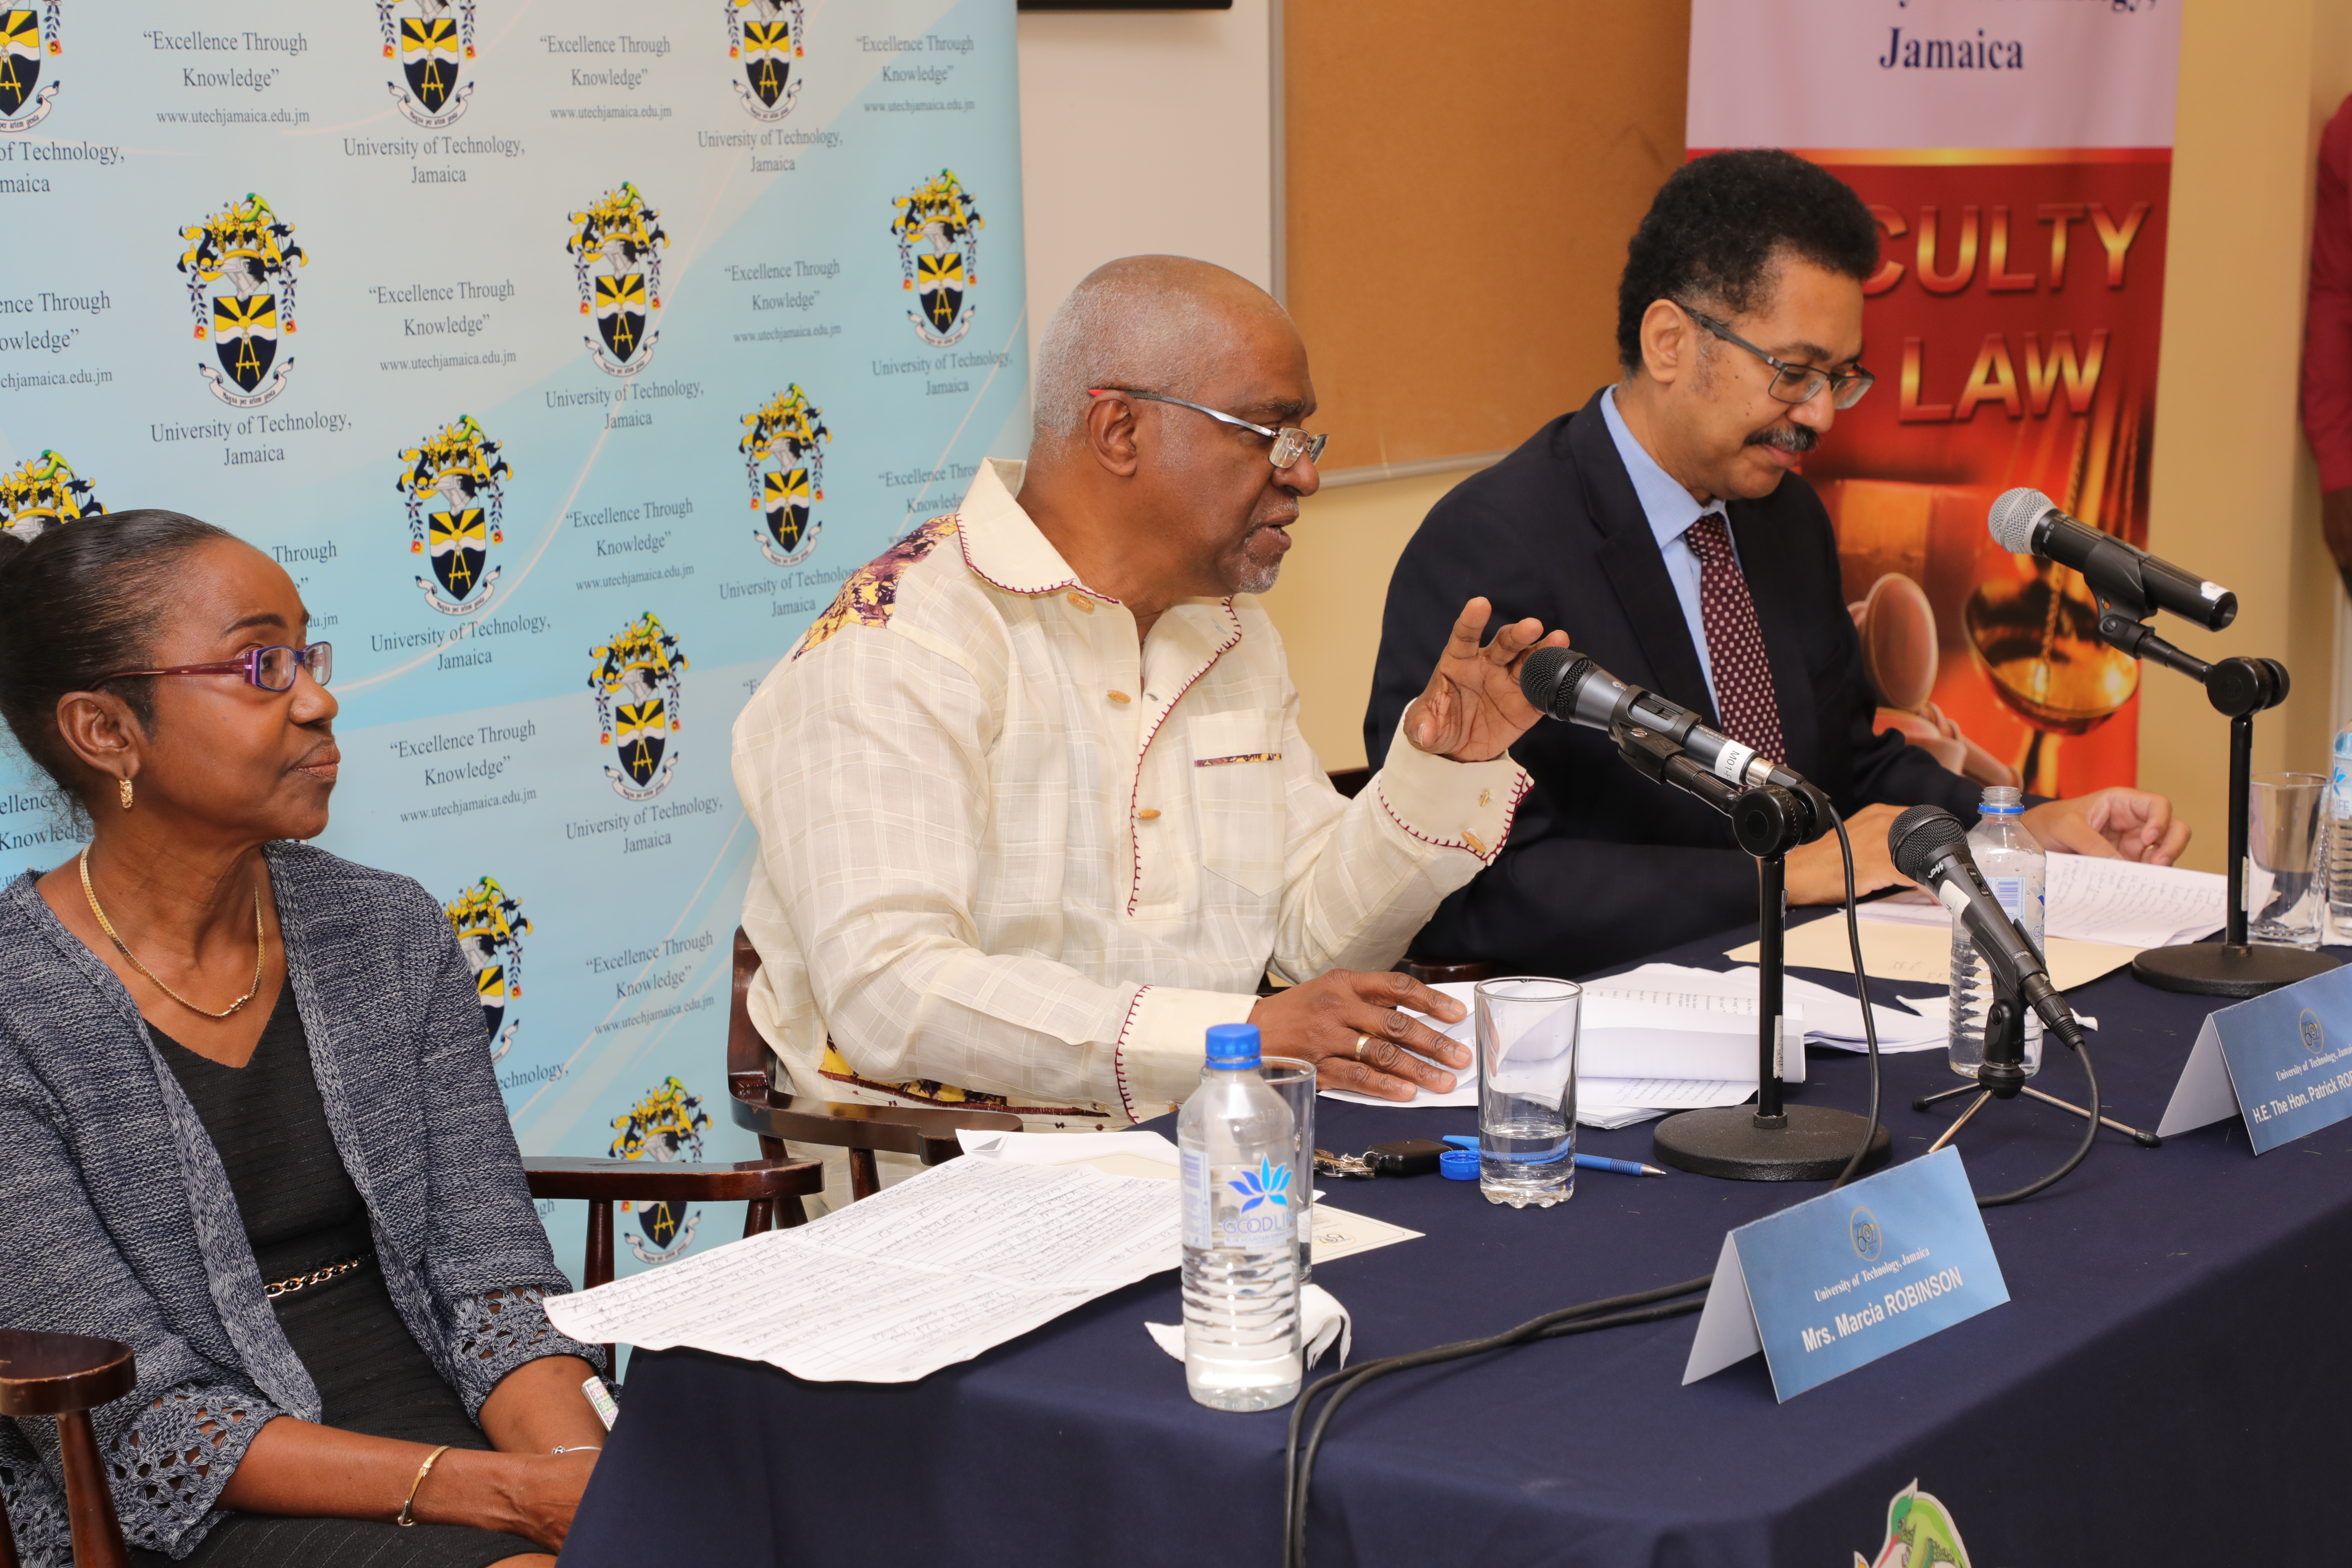 """International Court of Justice Judge Patrick Robinson Argues for """"Qualification of the Rule Against Double Jeopardy"""" at UTech, Ja. Distinguished Lecture"""